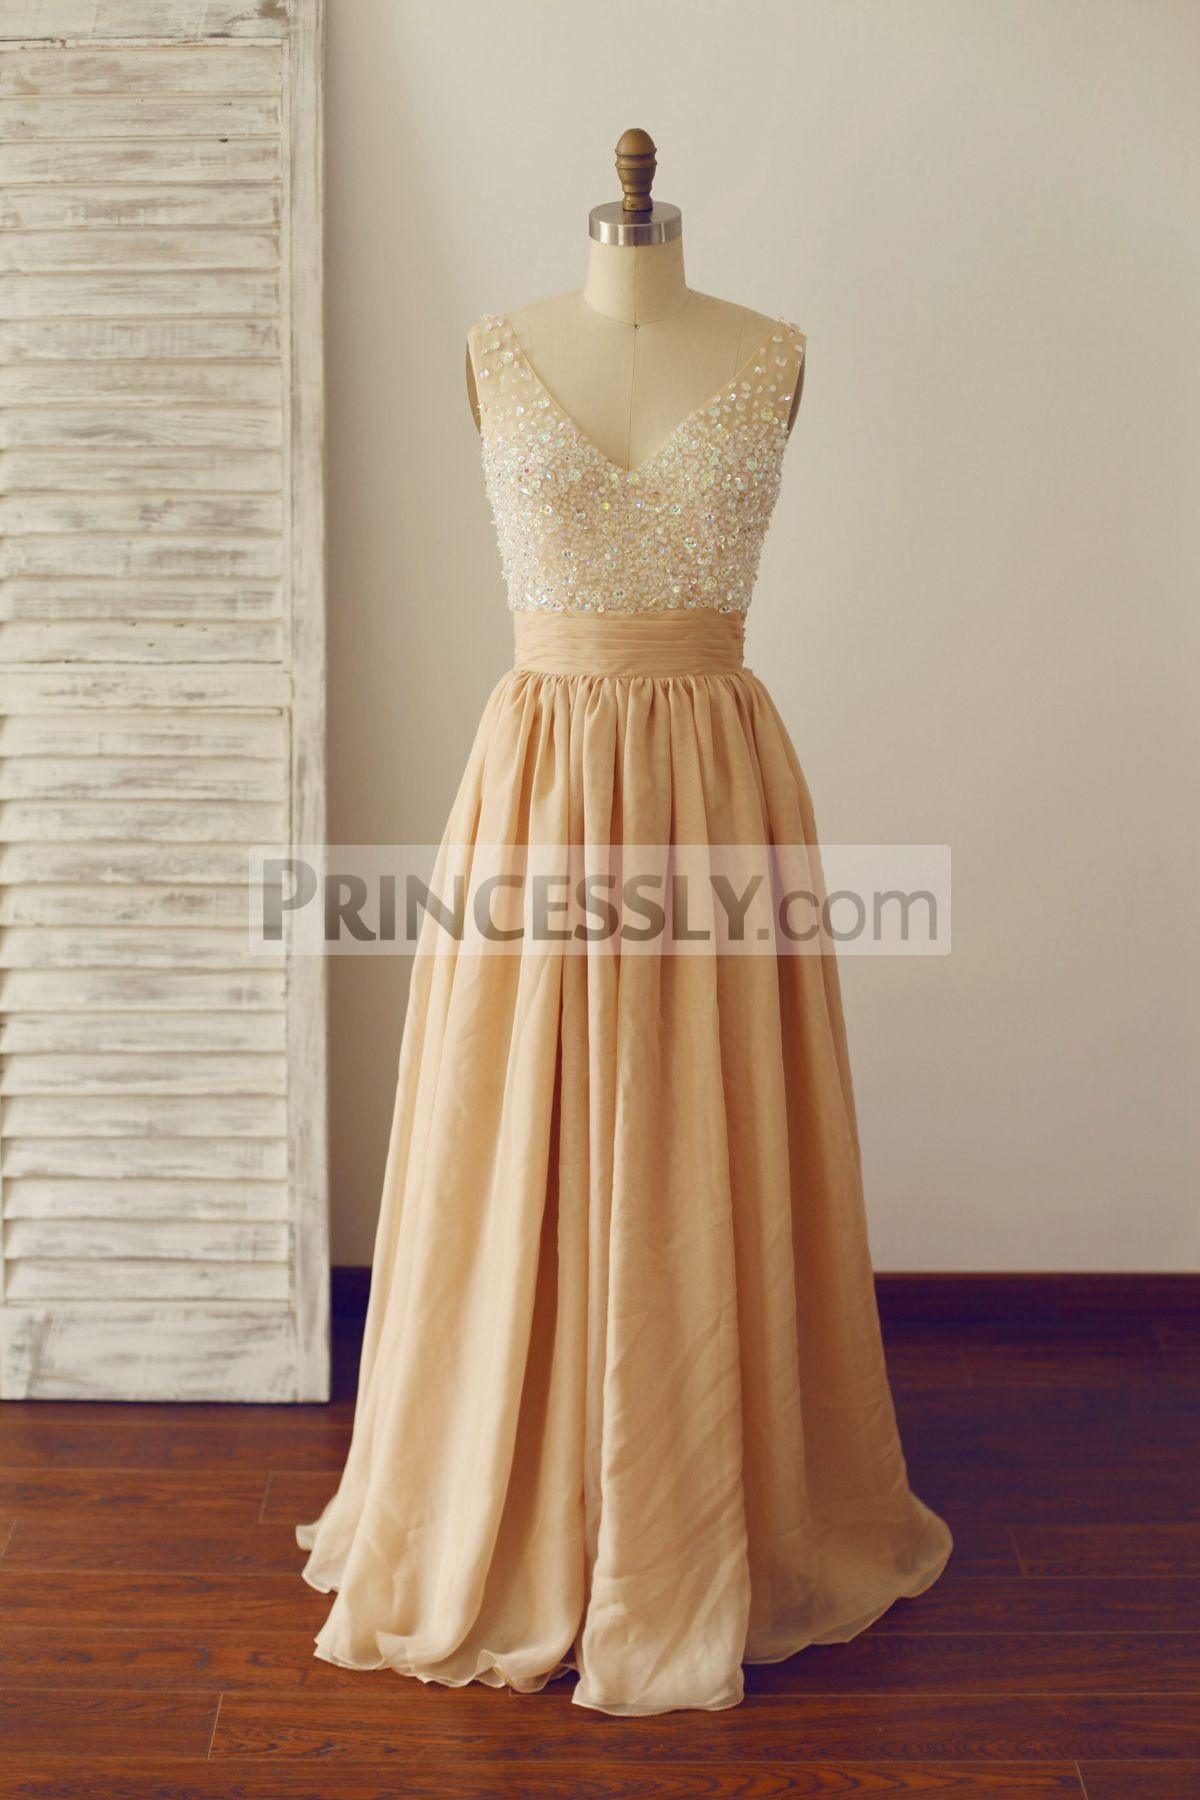 Princessly.com-K1000233-Sheer See Through Deep V Champagne Chiffon Beaded Prom Dress-31